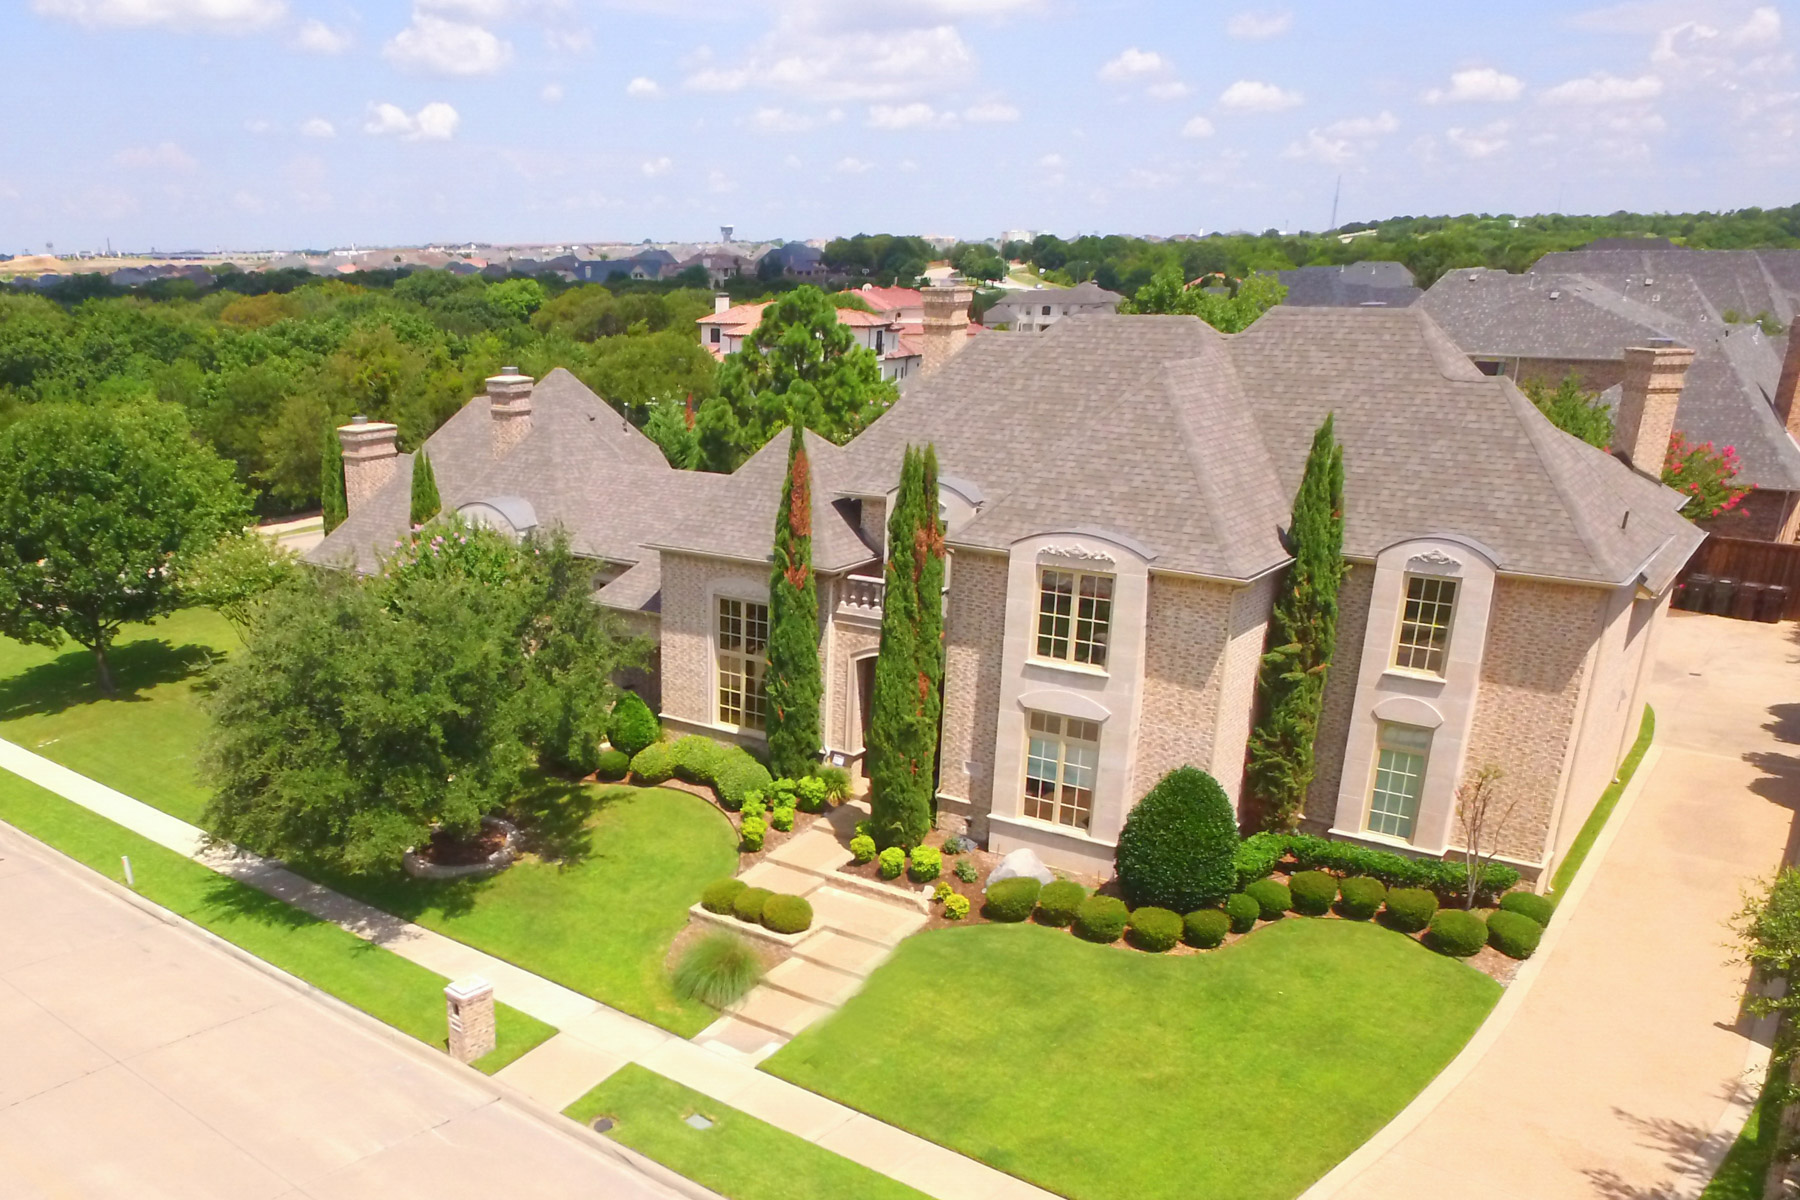 Single Family Home for Sale at Fabulous Double Lot Home in Shoal Creek 6641 Woodland Hills Lane Plano, Texas 75024 United States